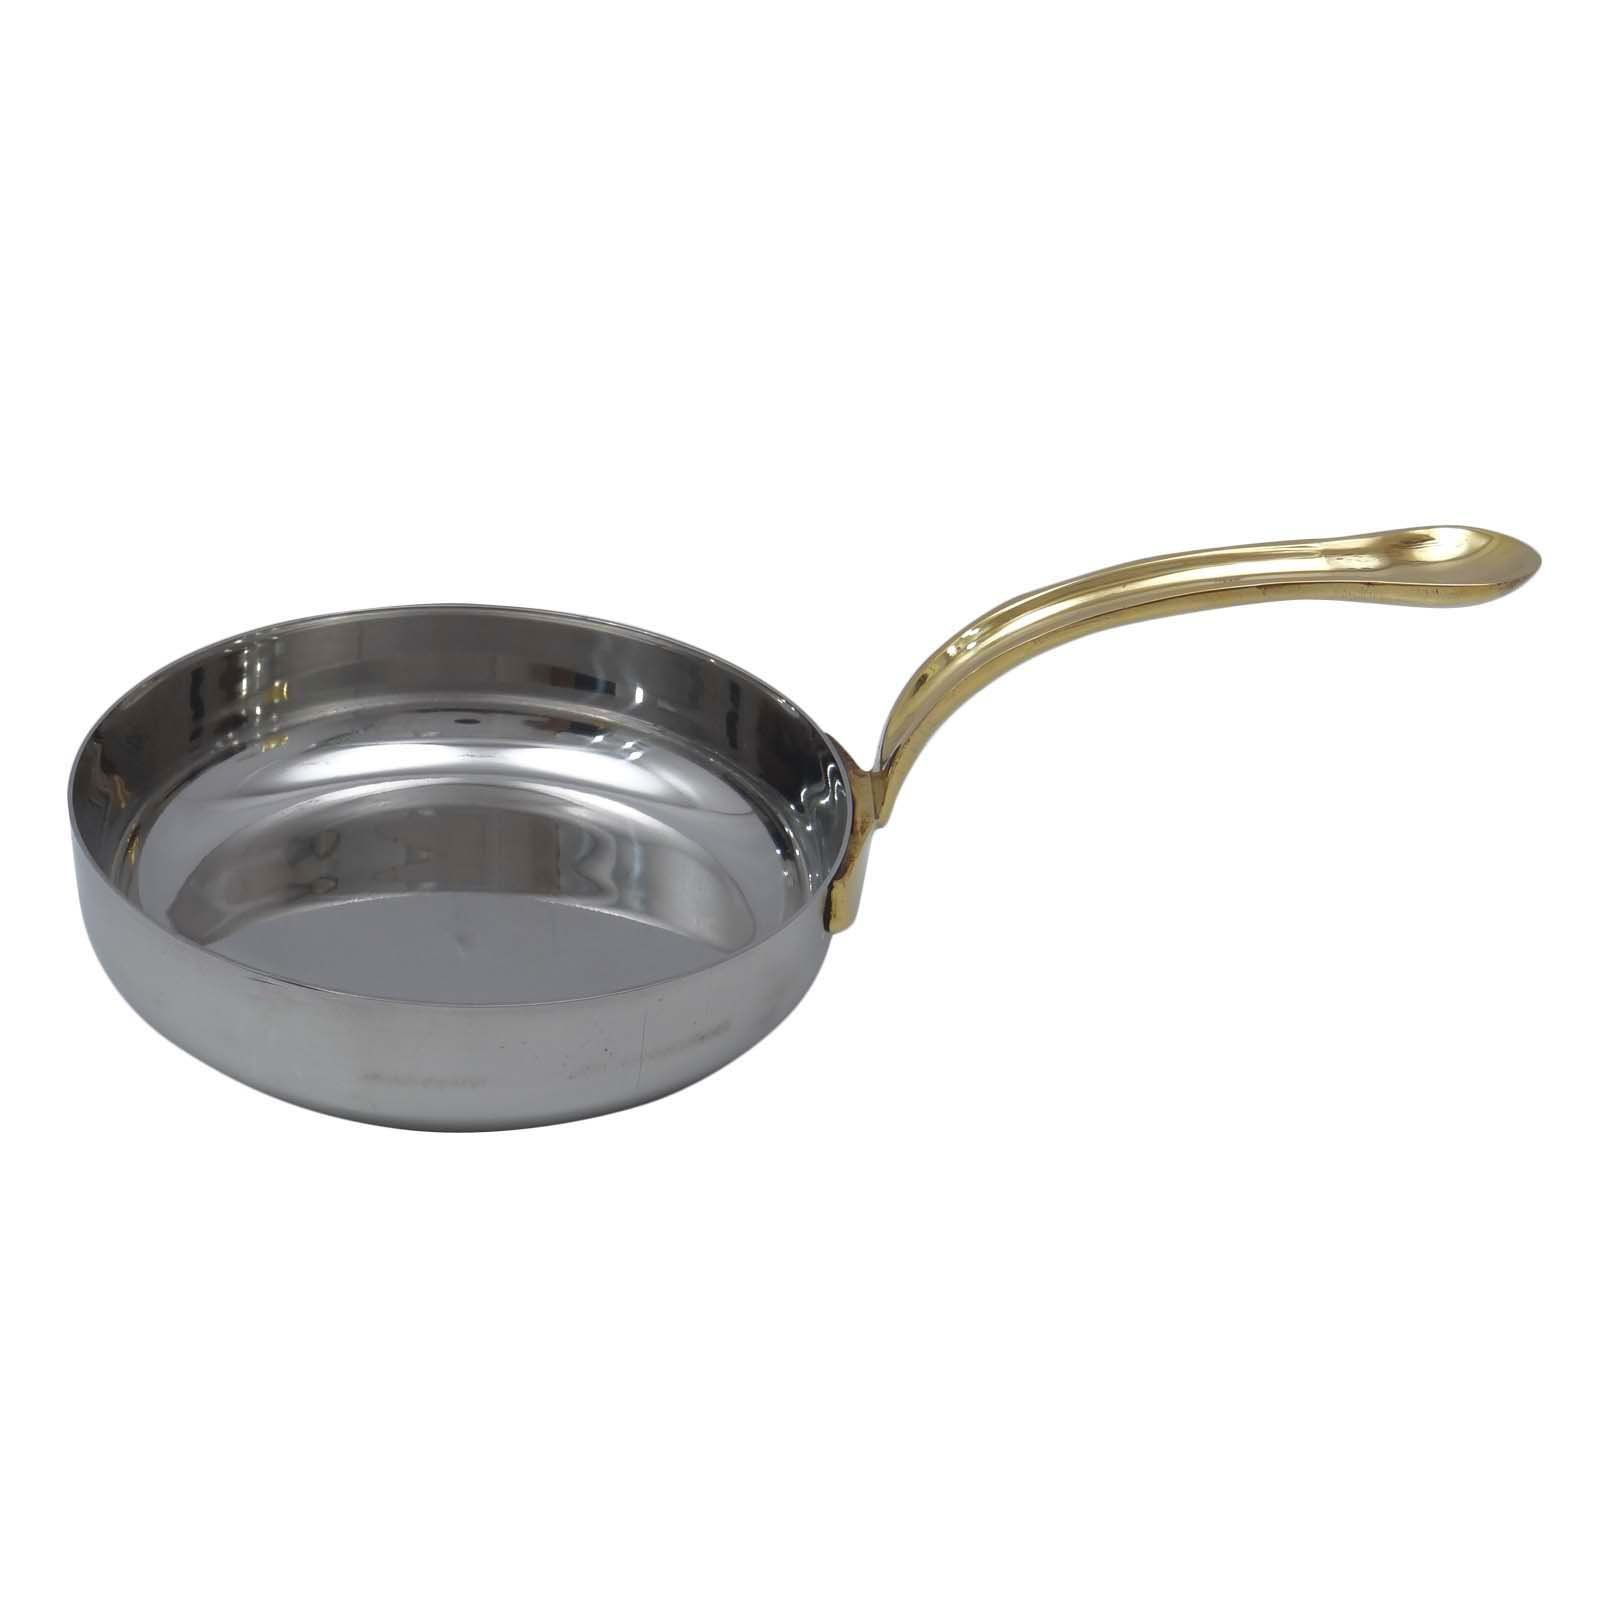 Small Stainless Steel Tadka Pan New Cookware Utensil Kitchenware Spice Heating